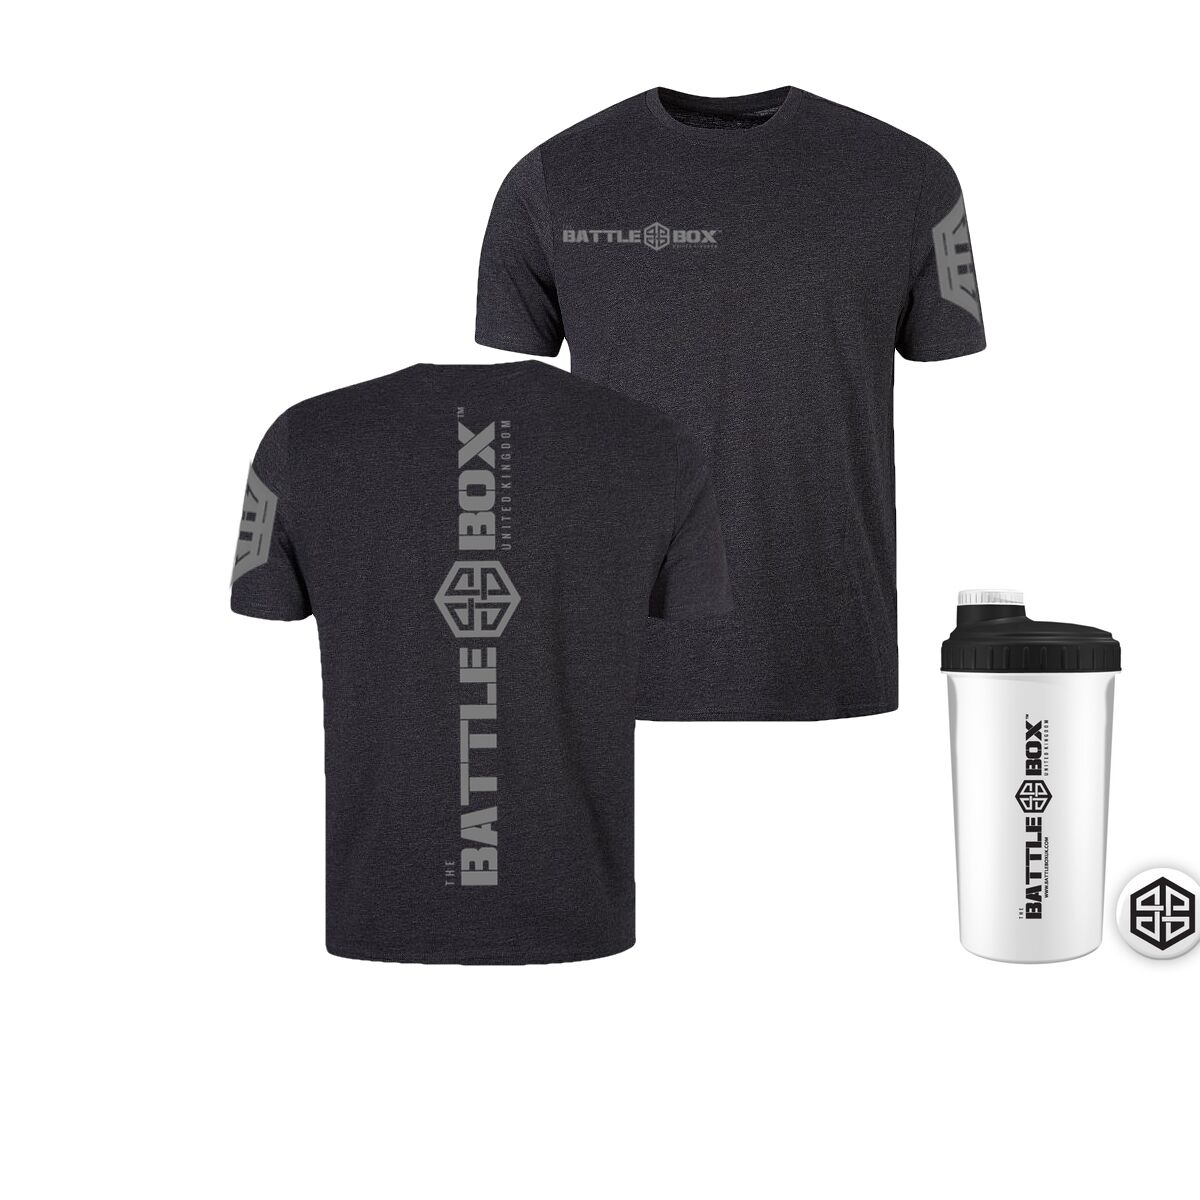 Battle Box Limited Edition T-Shirt + Shaker X-Fit Function Training WOD Gear